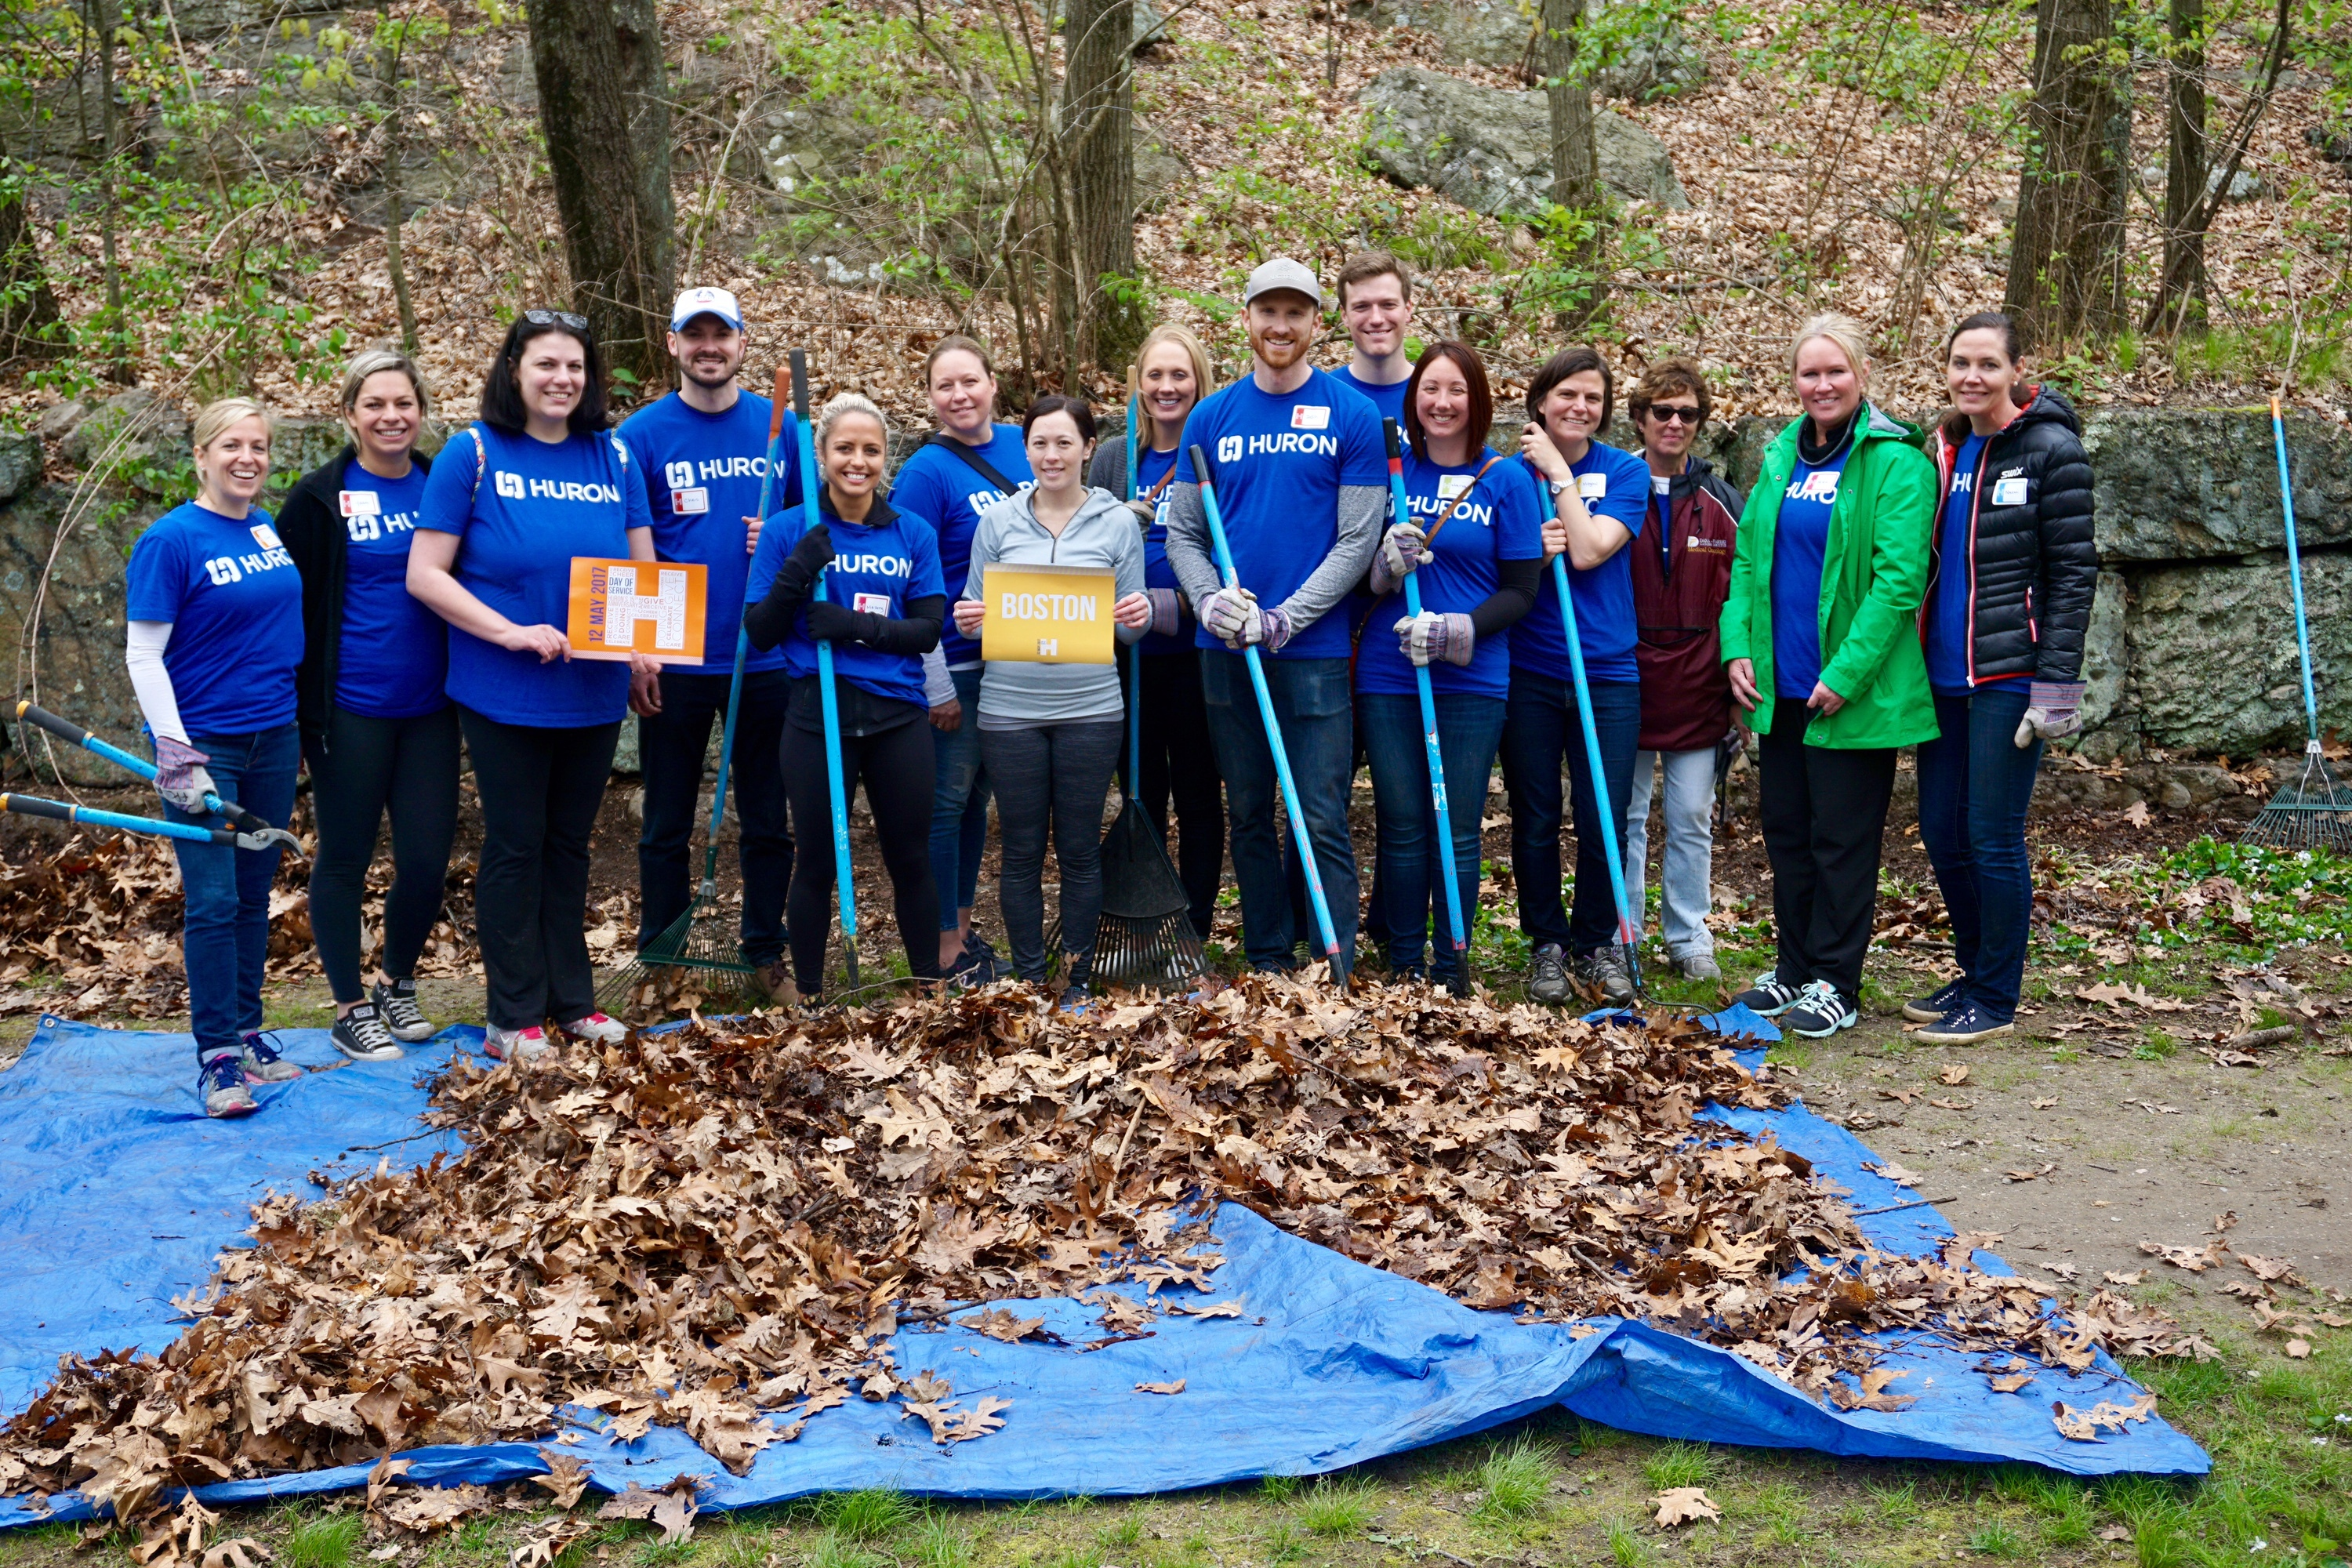 Huron employees clean up Boston's Franklin Park for the community to enjoy. (Photo: Business Wire)